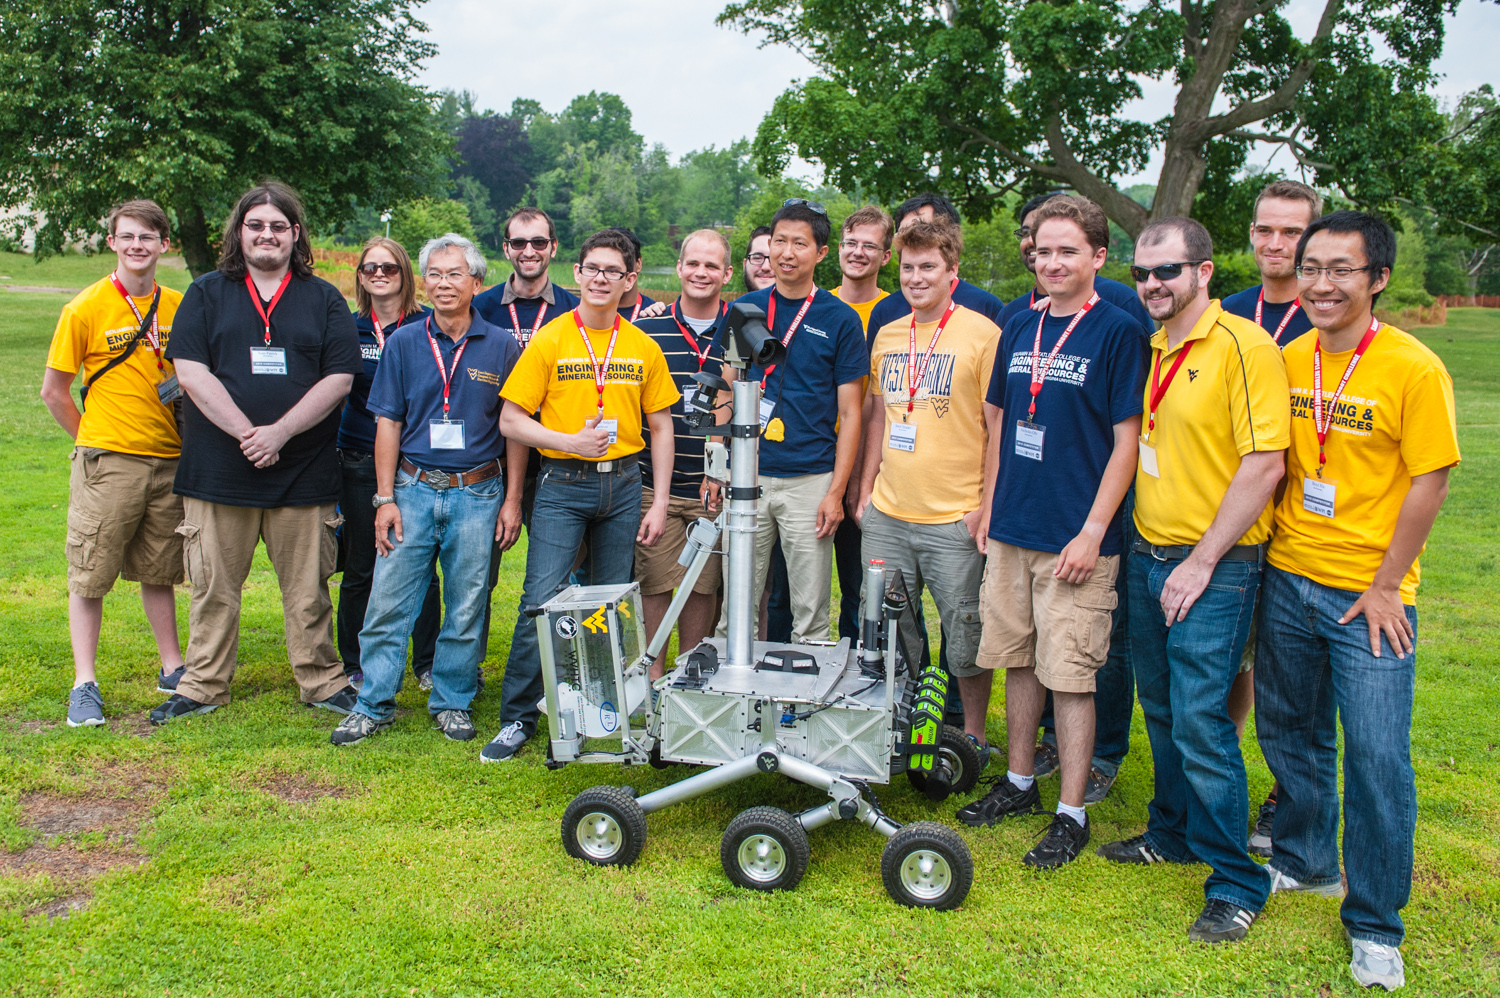 West Virginia University's robotics team spent 18 months designing, building, and testing the Cataglyphis rover. Named after a desert ant that travels long distances, the Cataglyphis was the first rover to complete the second stage of Nasa's Sample Return Robot Challenge.  Credit:  Nick Morales/West Virginia University